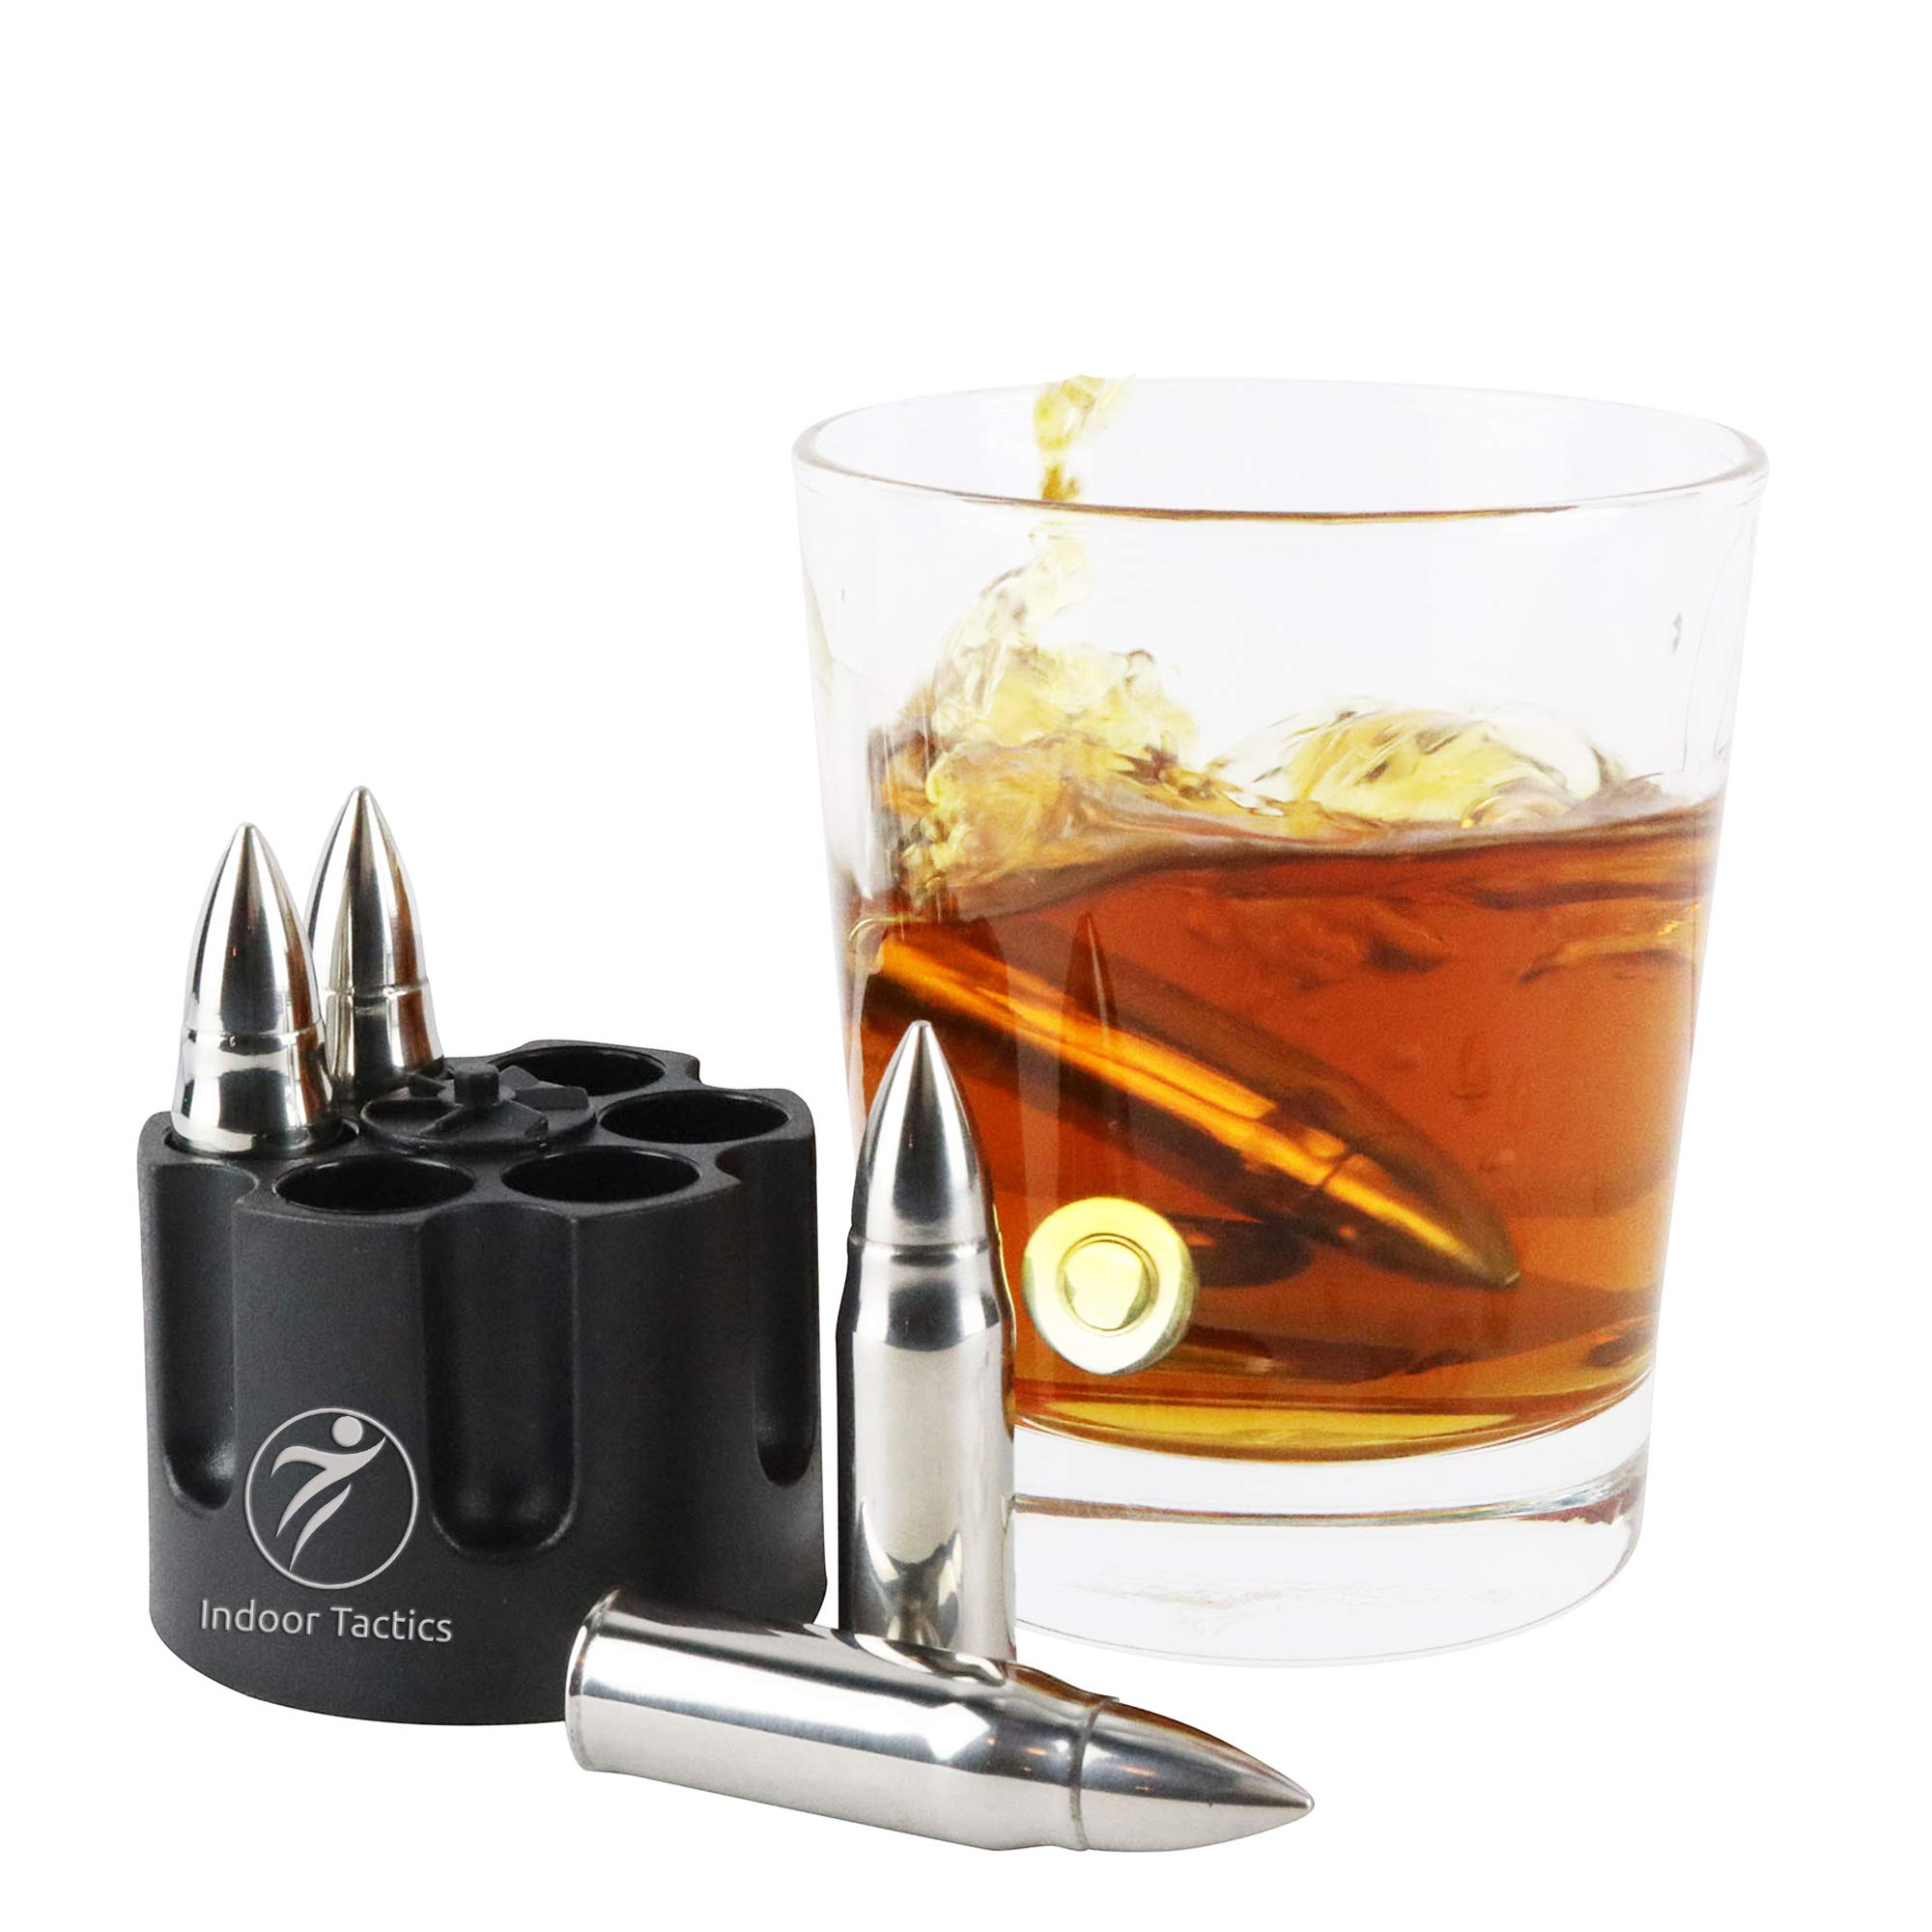 WHISKEY BULLET STONES WITH BASE - XL, 2.5'' Original Extra Large Bullet-Shaped Whiskey Chillers, Unique Revolver Freezer Base, Set of 6, Gift for Whisky, Bourbon, Scotch Lovers, Groomsmen, Military